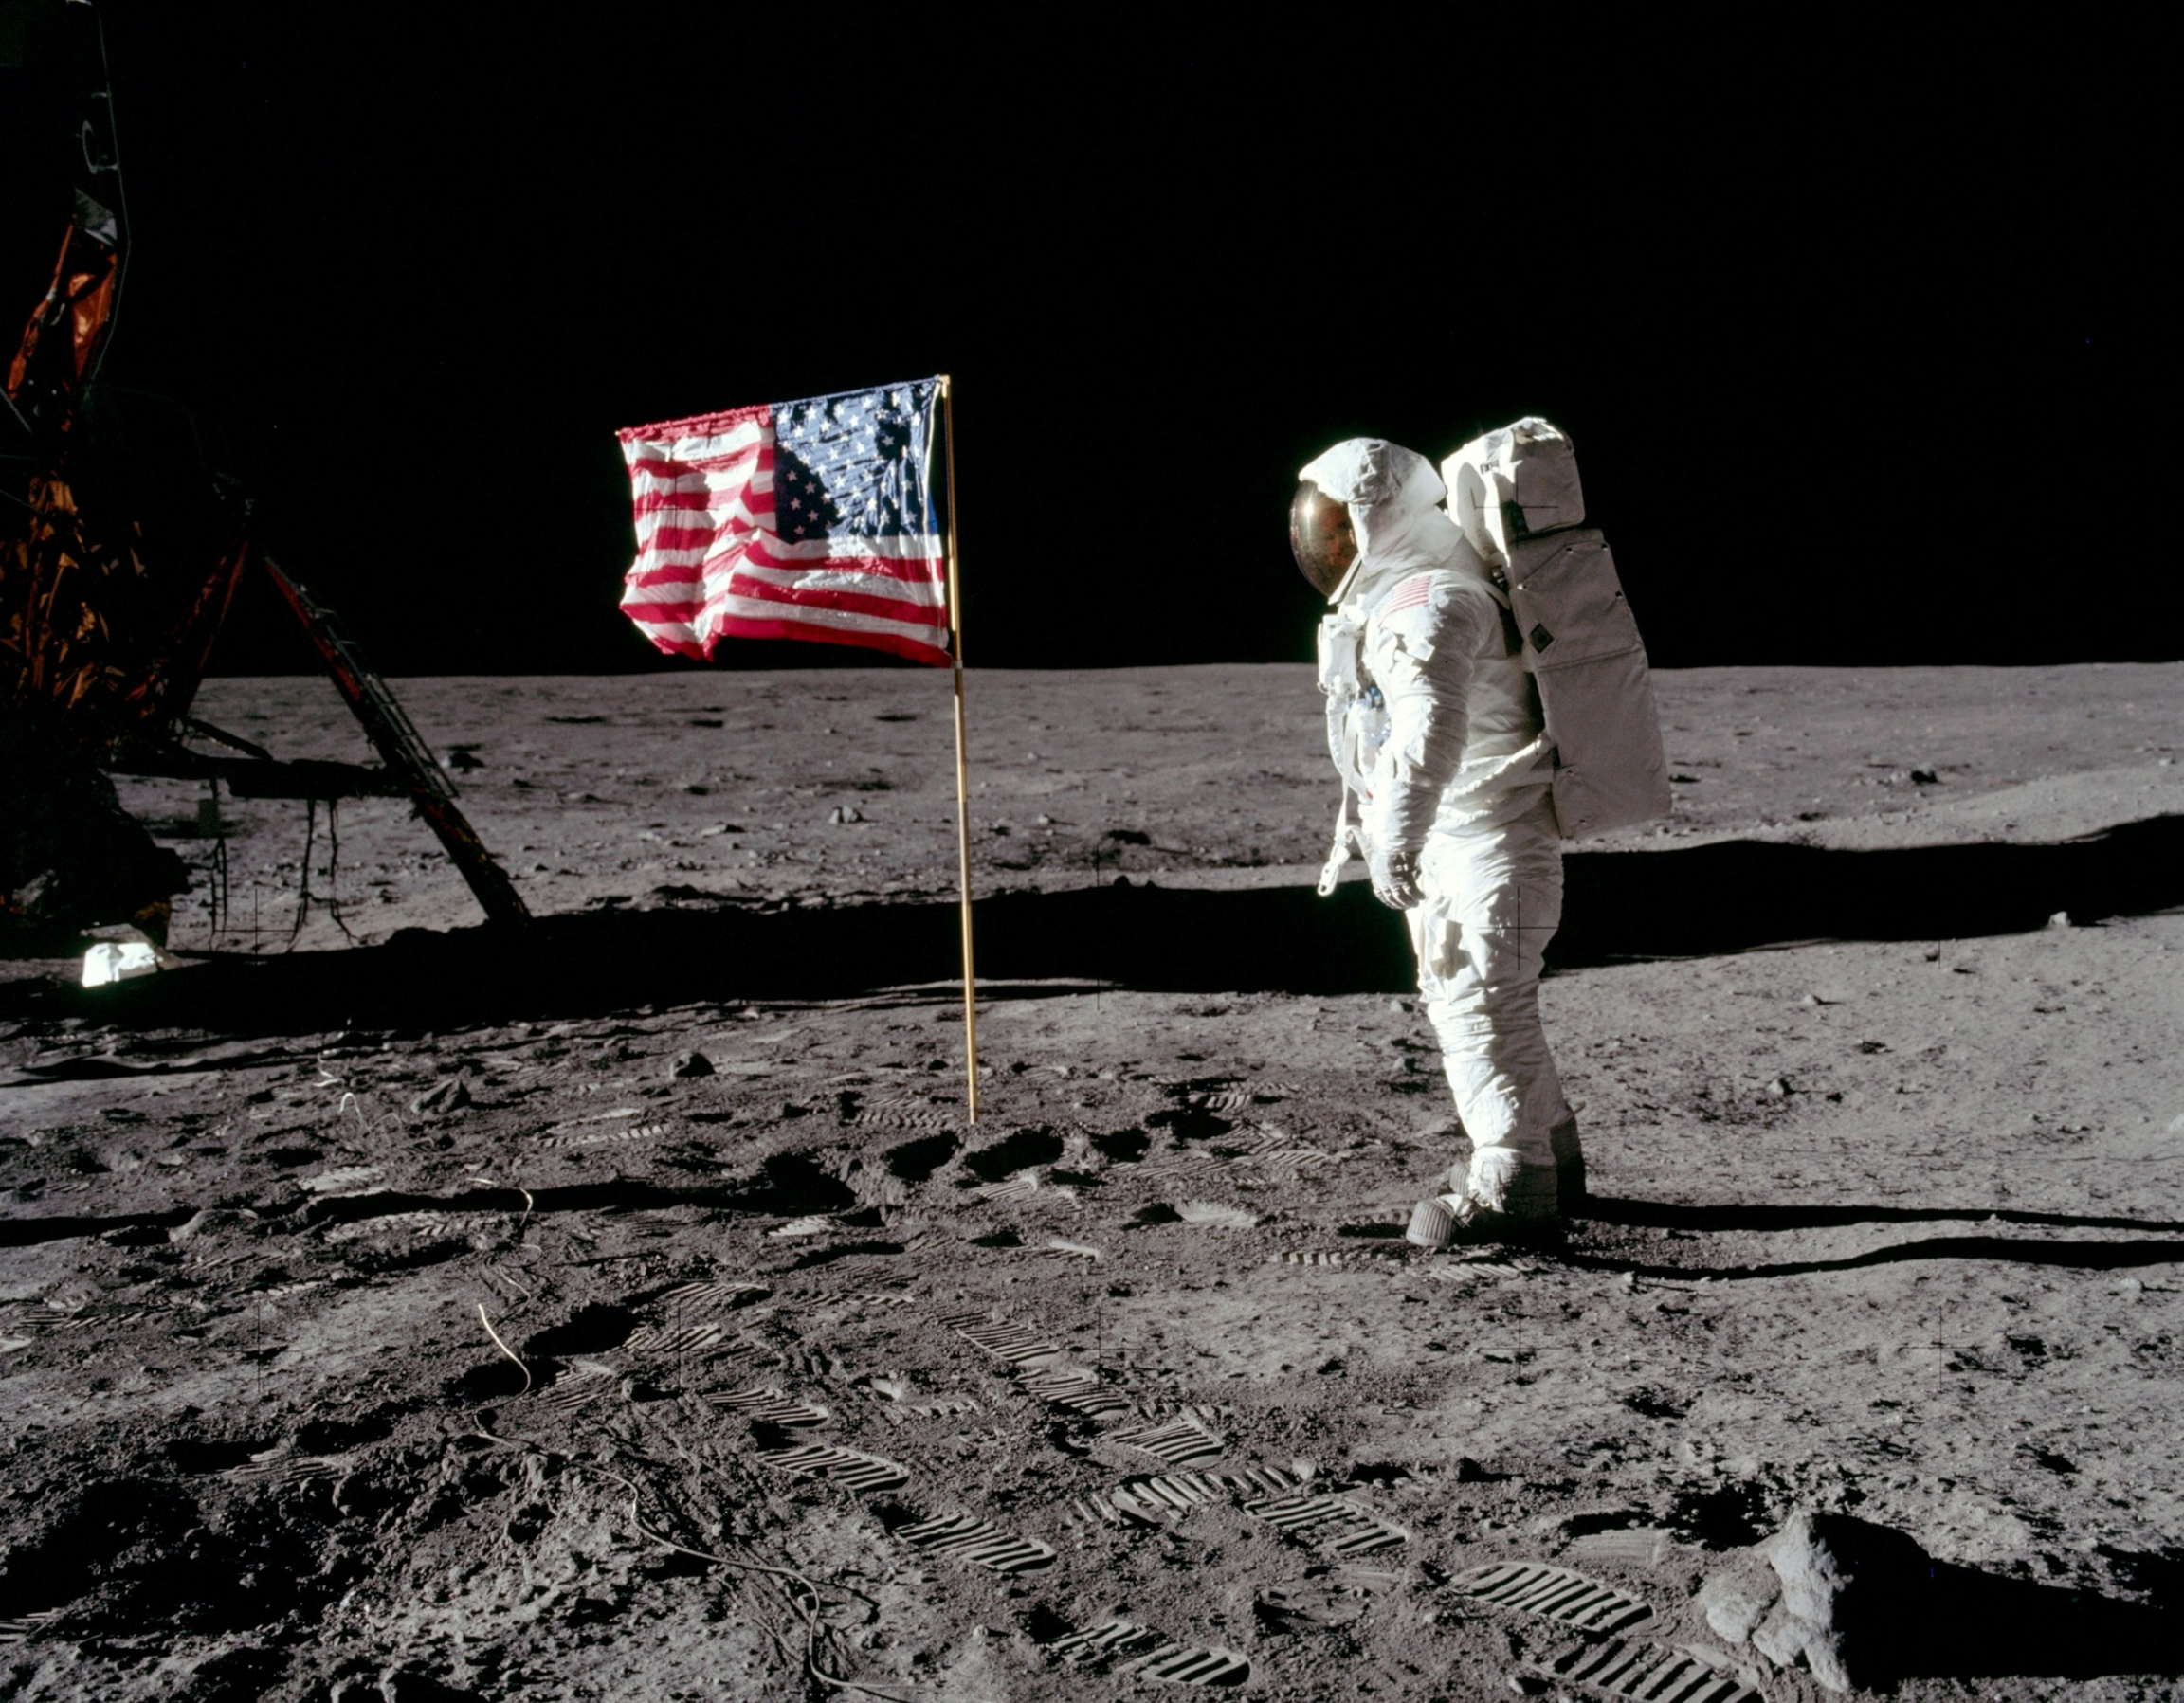 Buzz Aldrin stands in his full astronaut suit facing the United States flag.